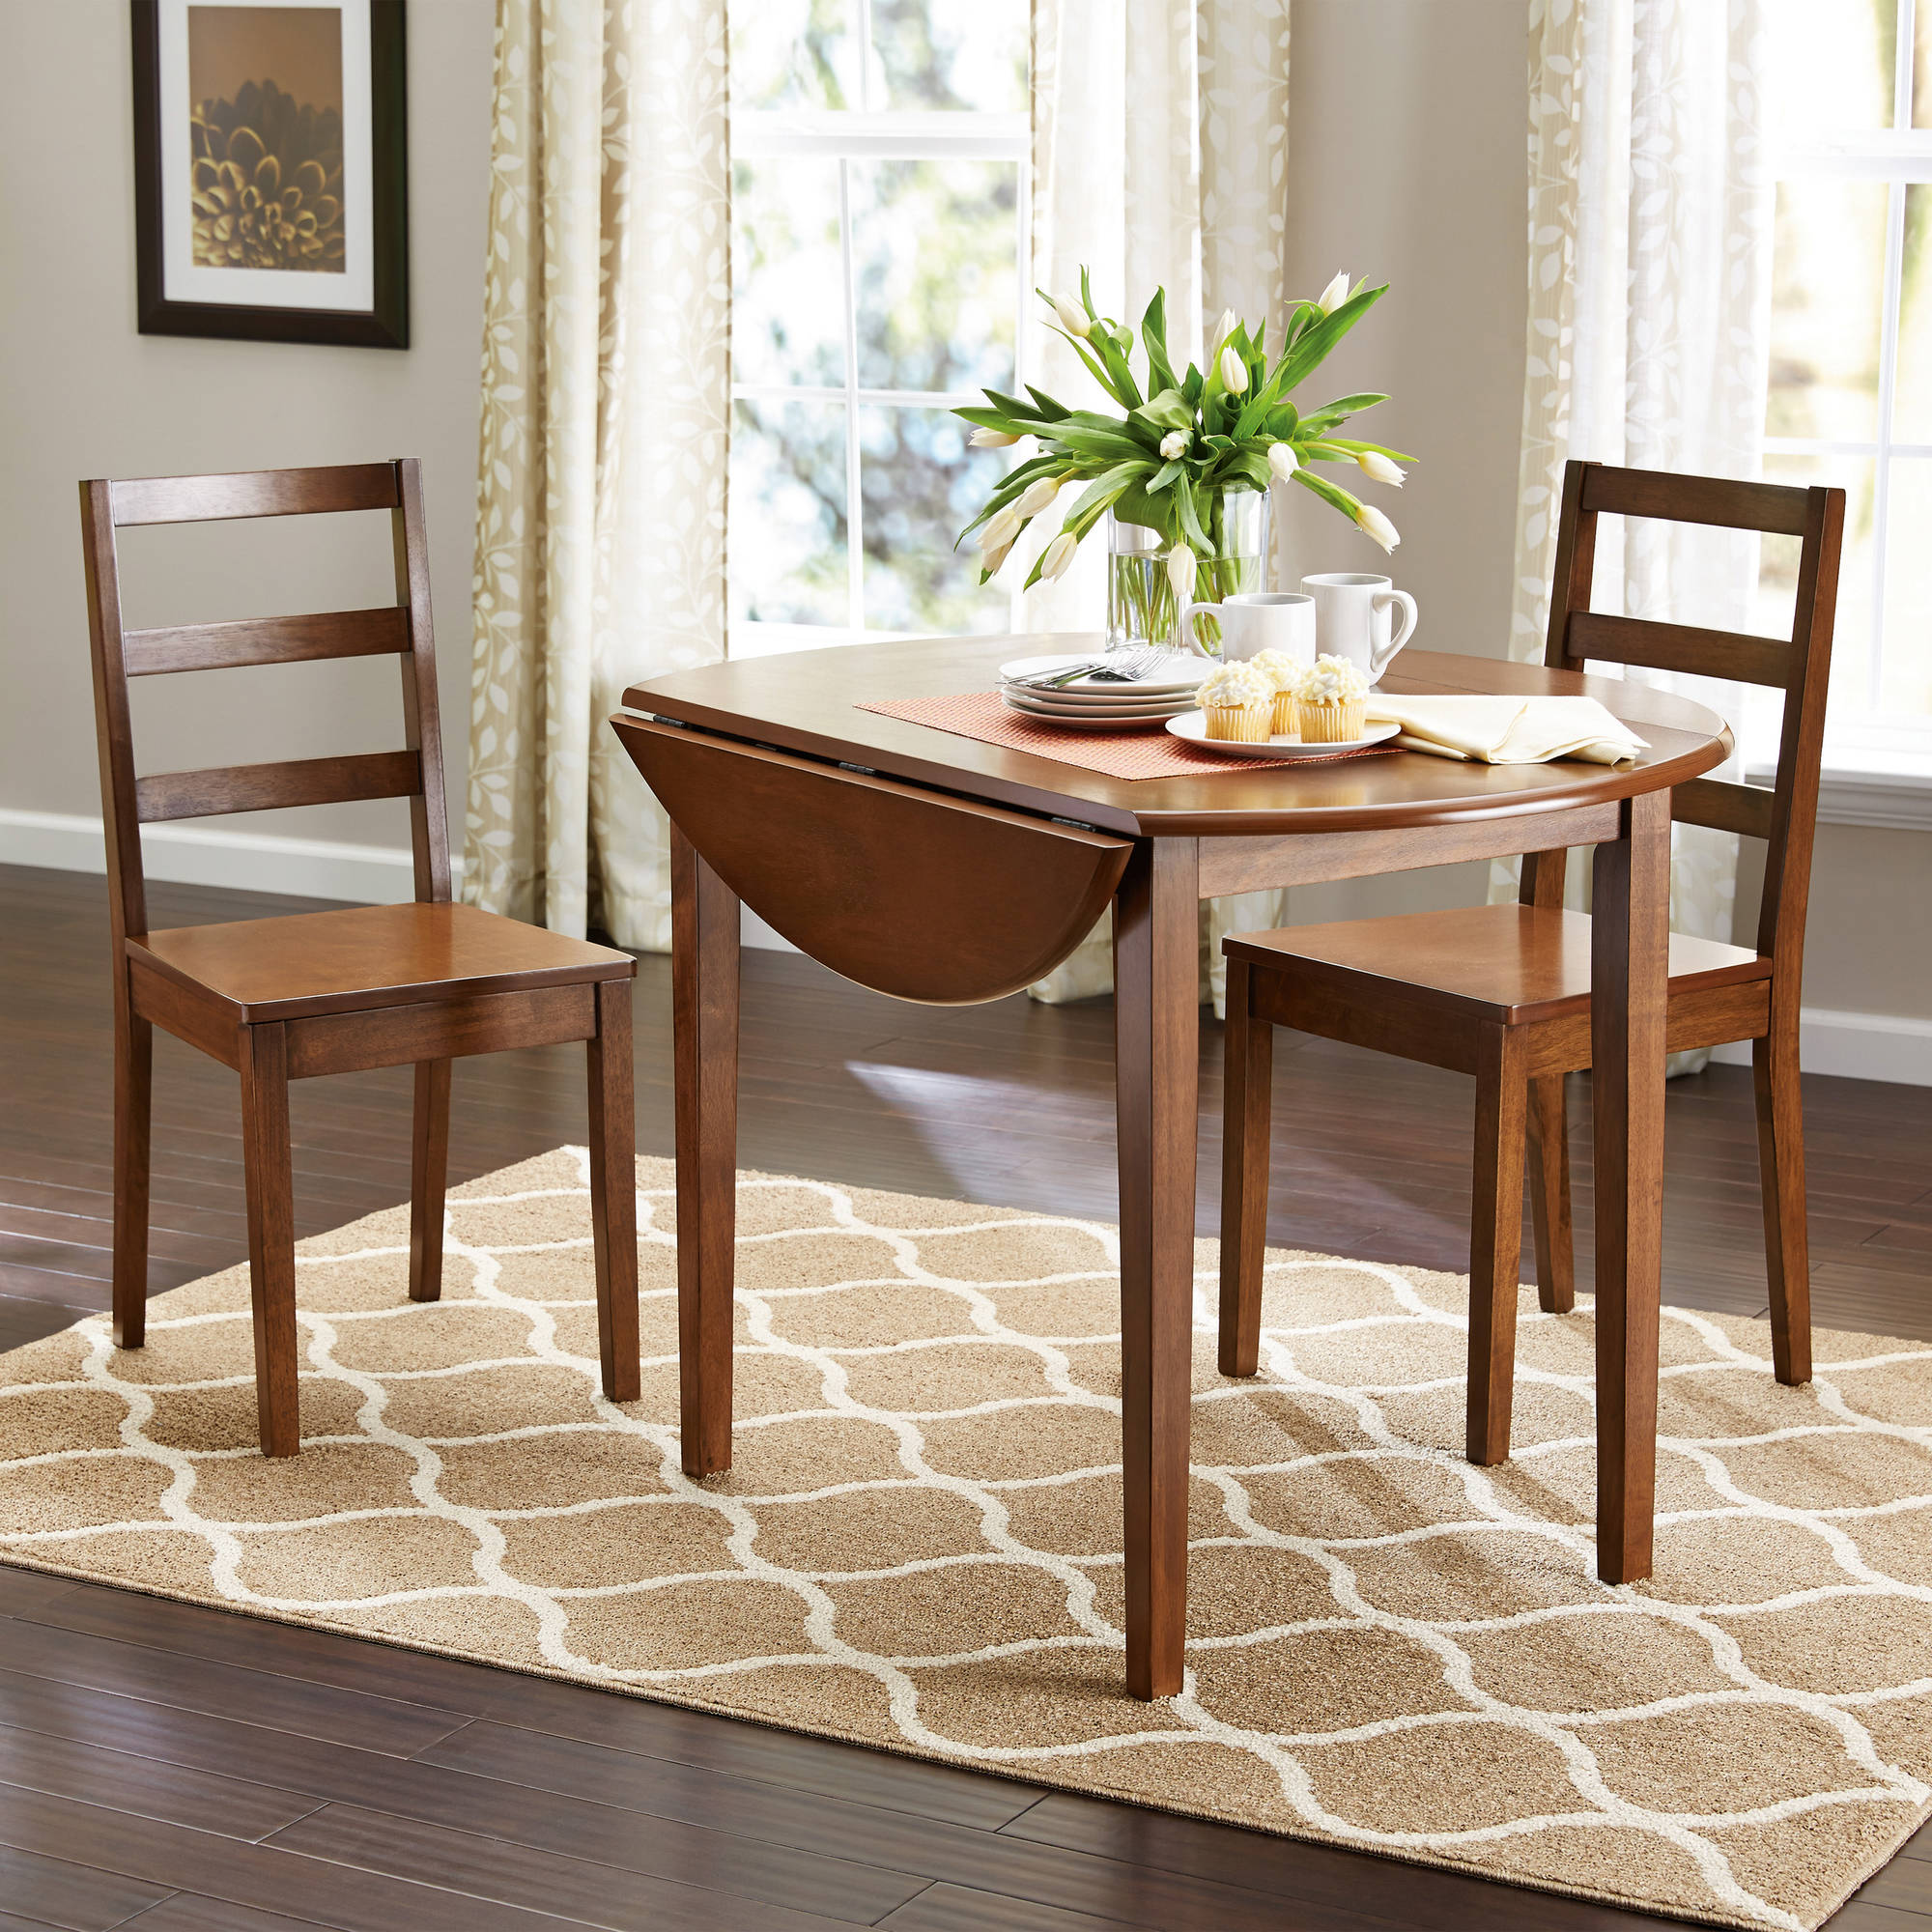 Mainstays 3 Piece Drop Leaf Dining Set Medium Oak Finish Walmartcom